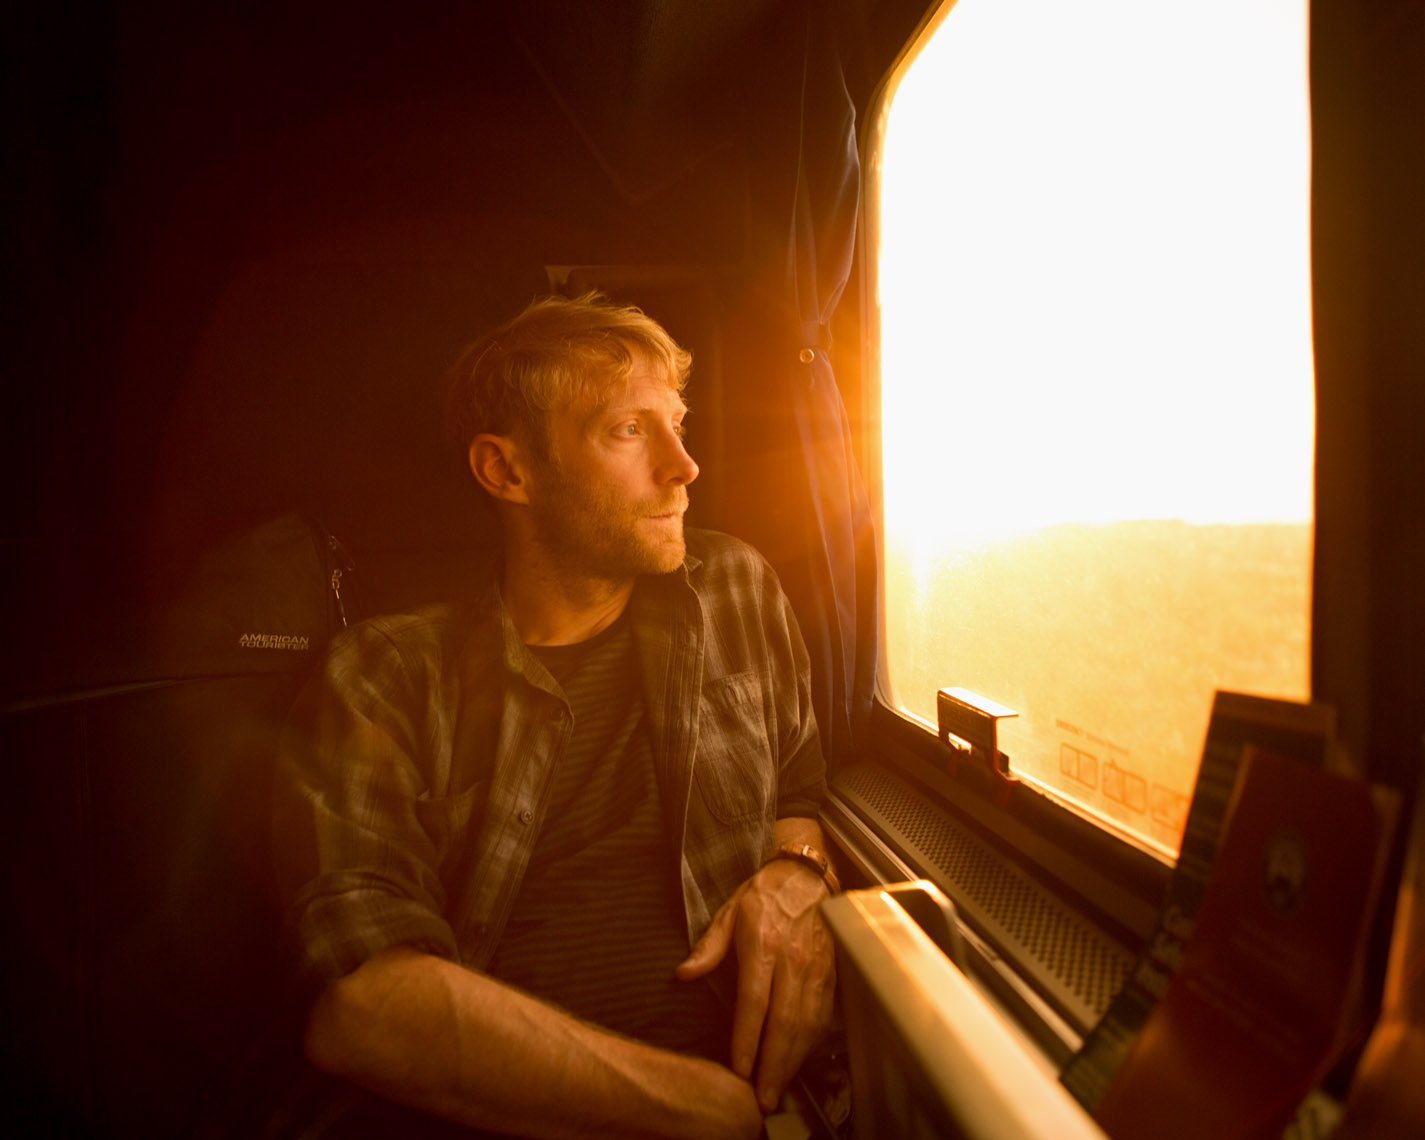 09_Kris_Davidson_Train_Window_Sunset